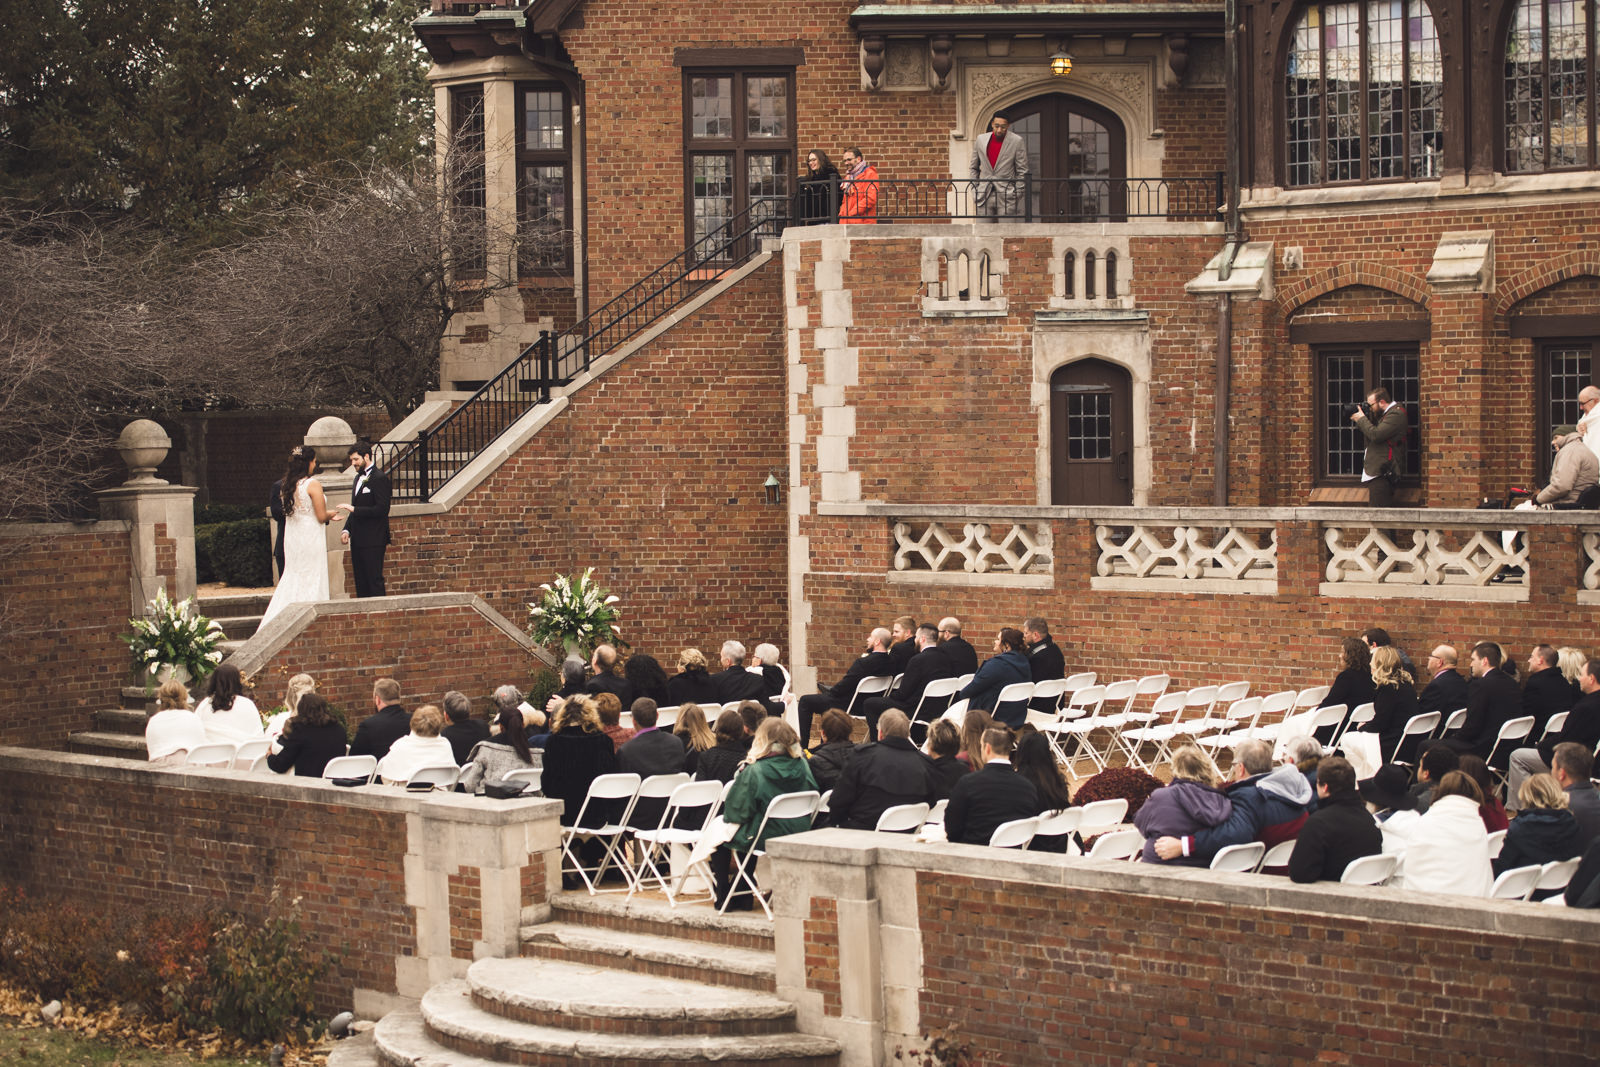 rollins-mansion-1025-wedding-photographer-des-moines-iowa-m-c.jpg